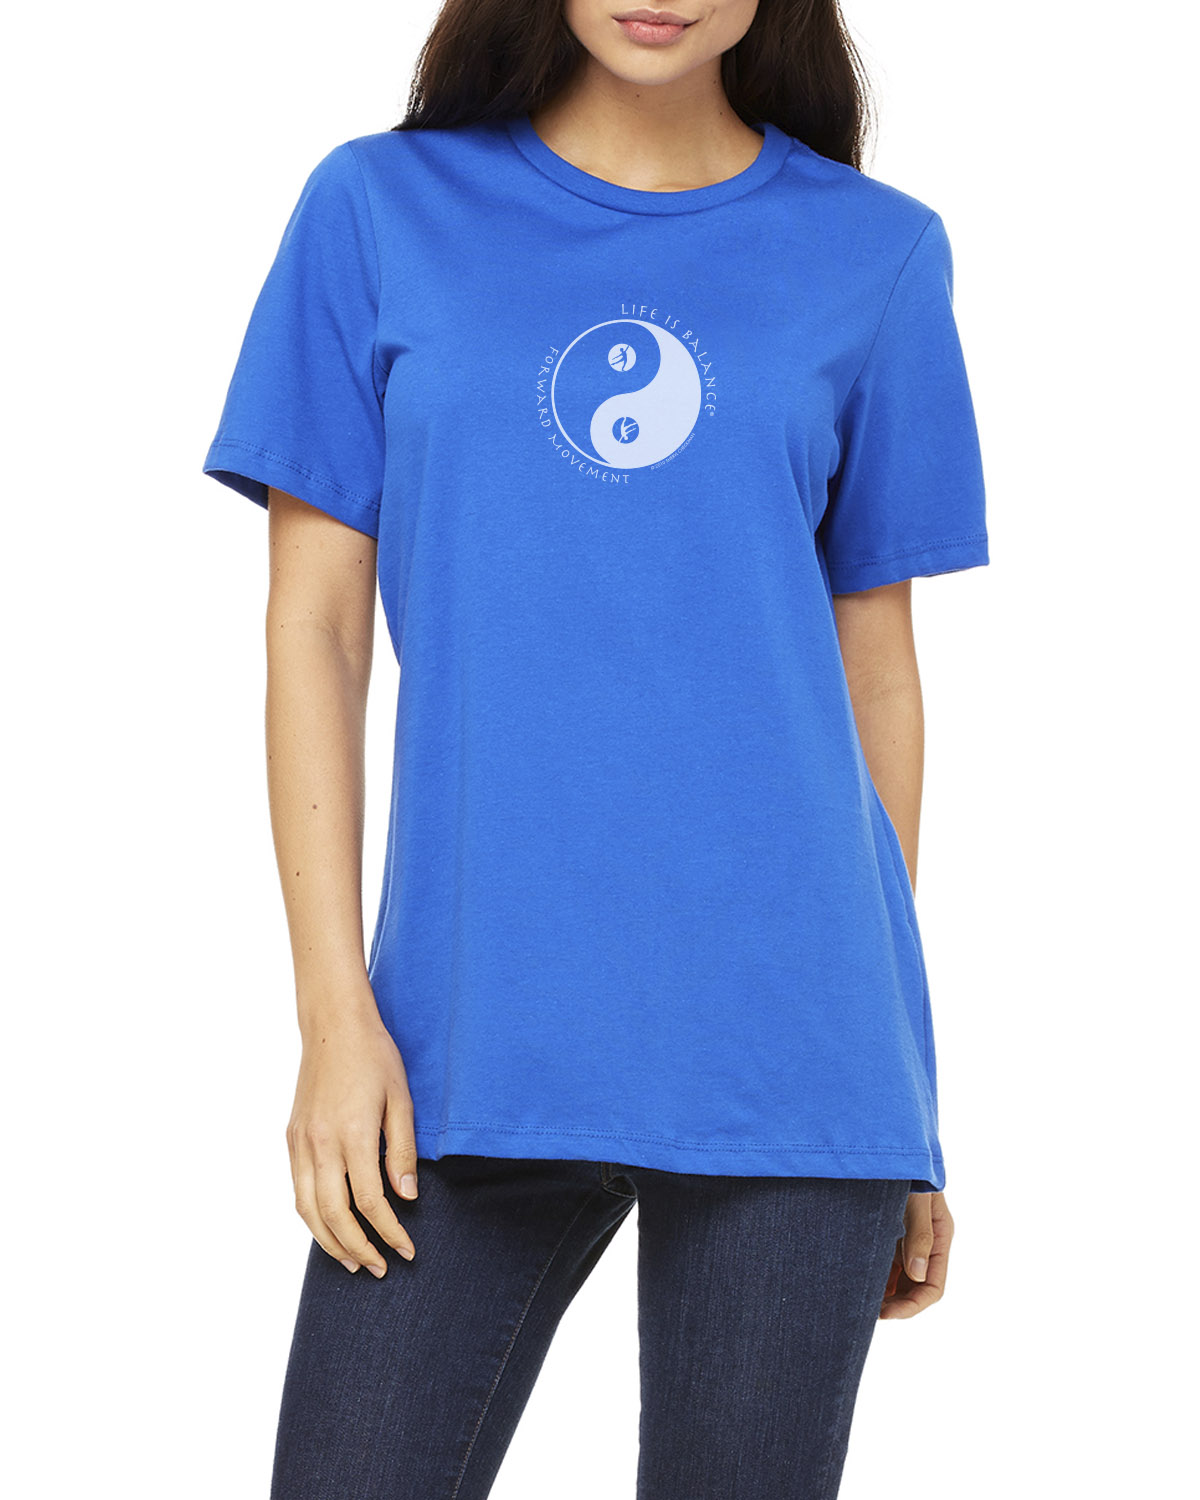 Women's short sleeve dance t-shirt (royal)